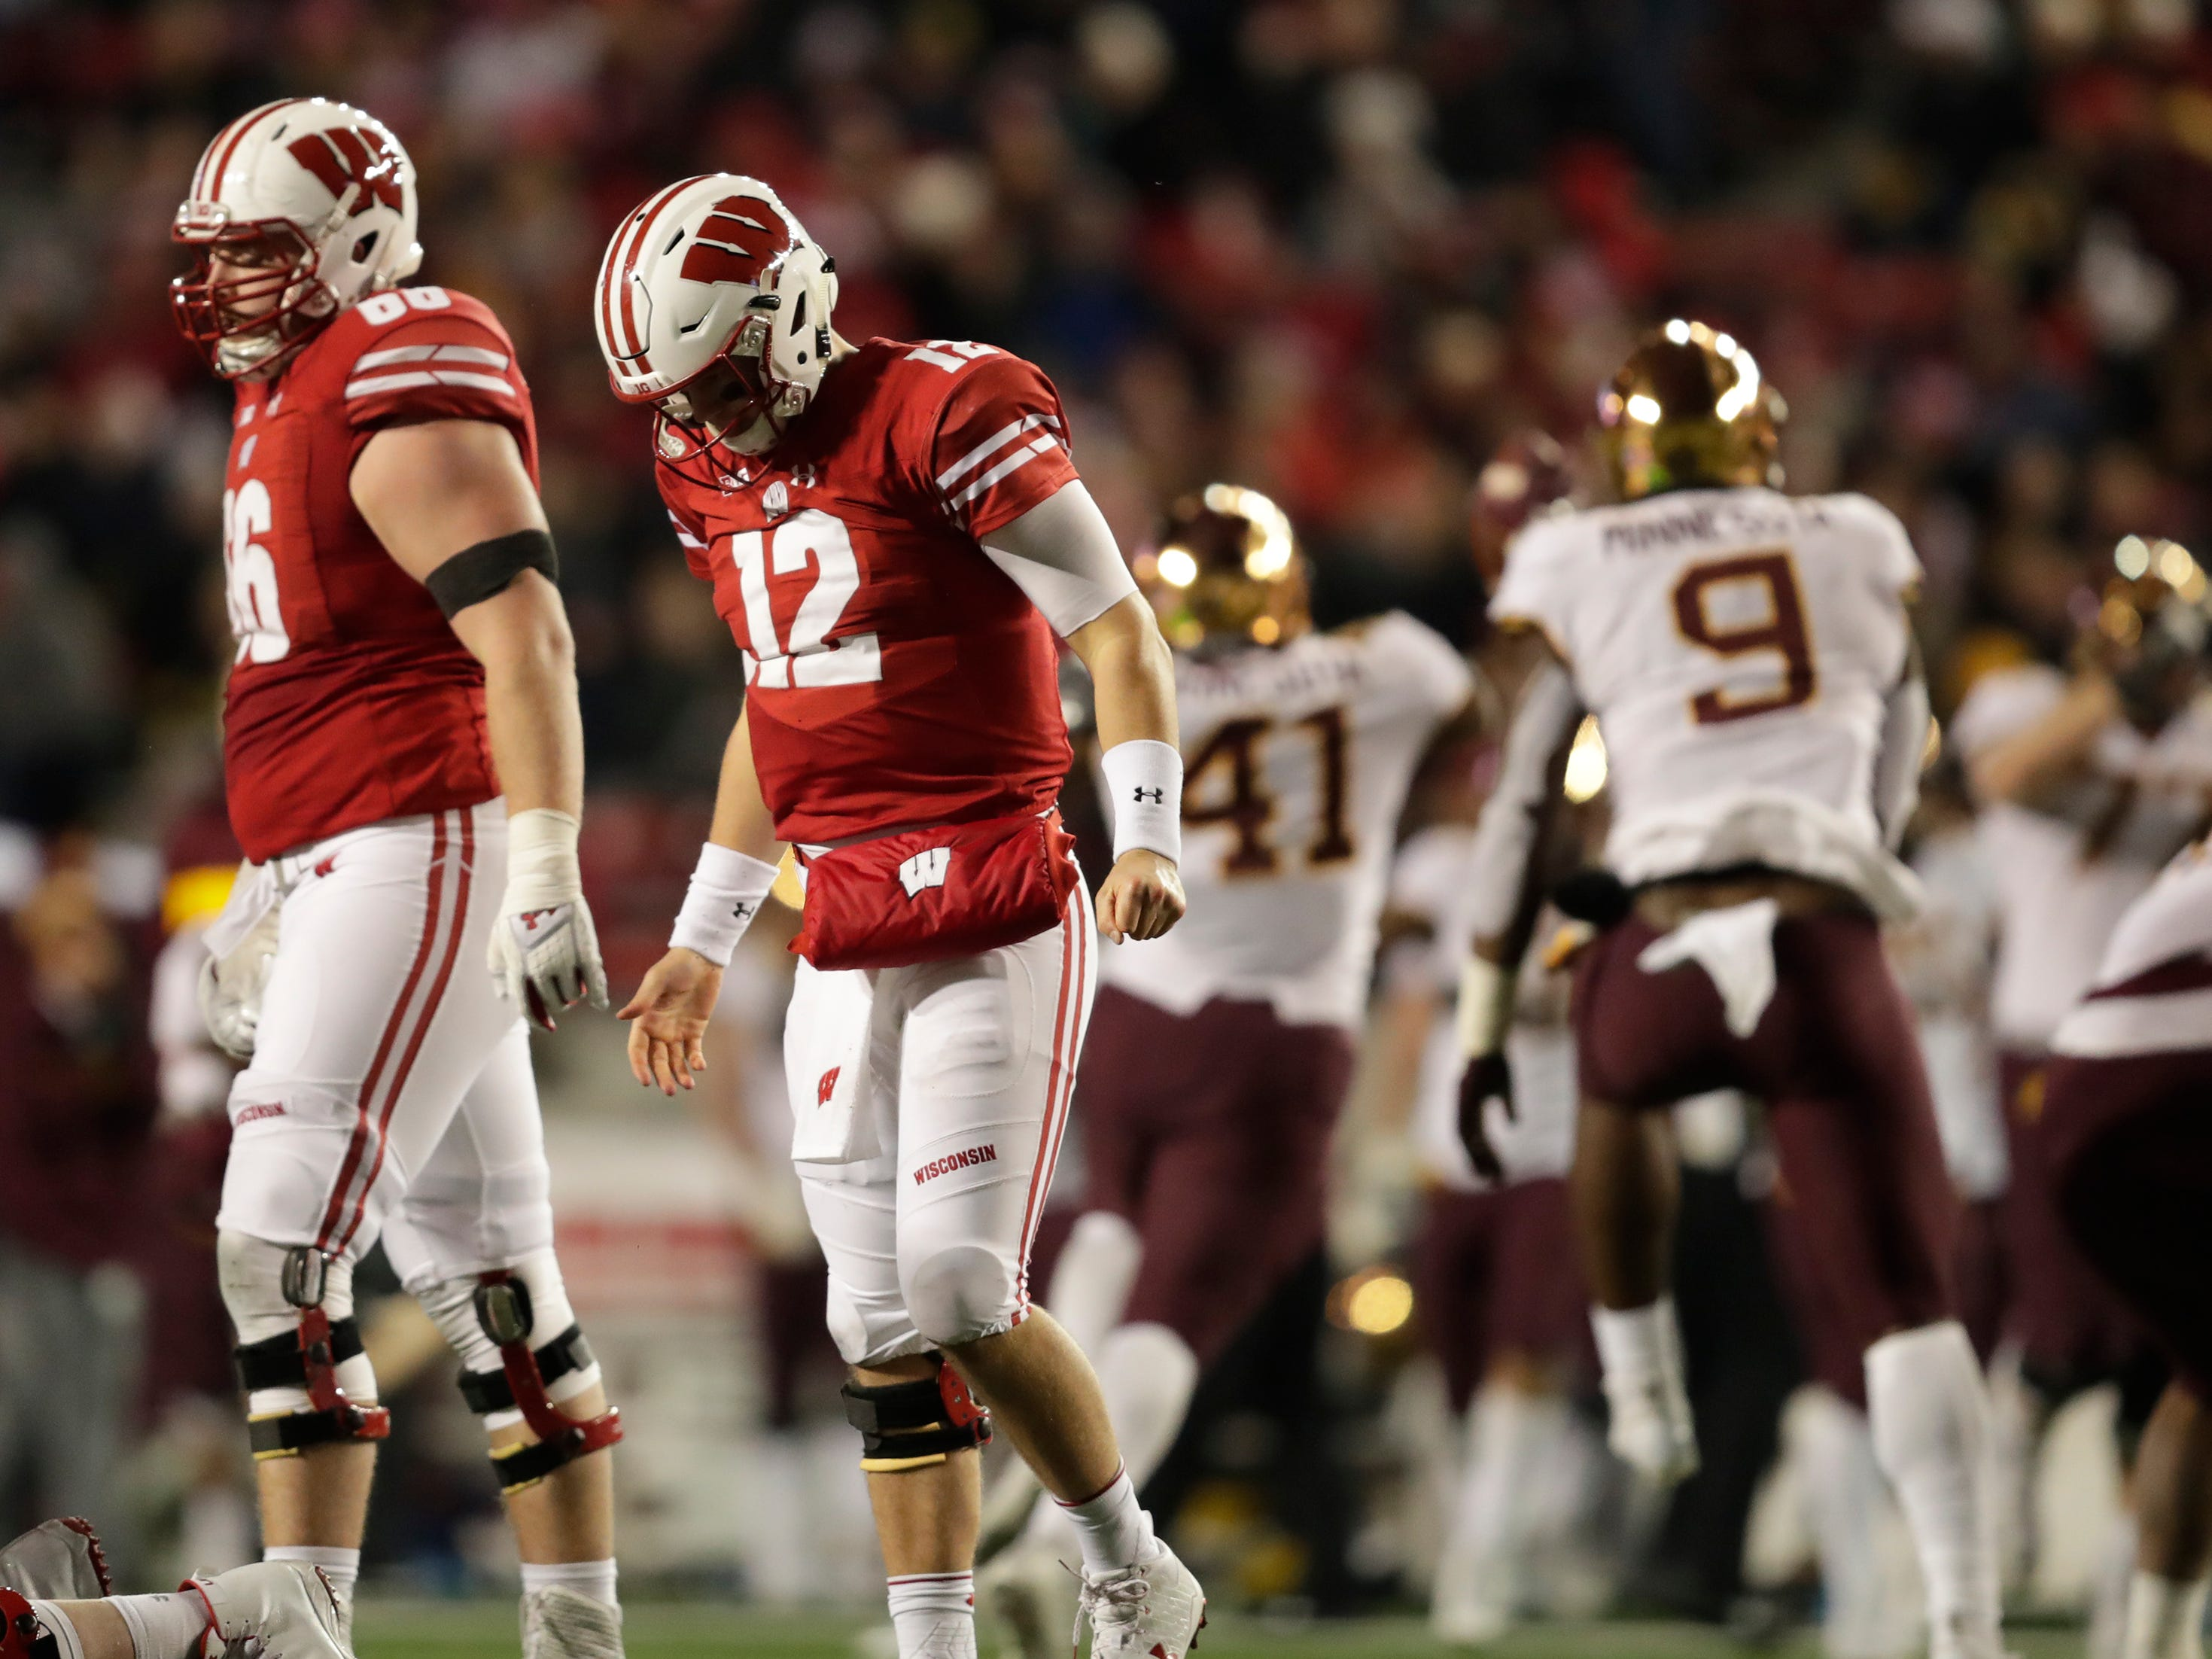 Wisconsin quarterback Alex Hornibrook hangs his head after losing a fumble against Minnesota in the fourth quarter on Saturday.